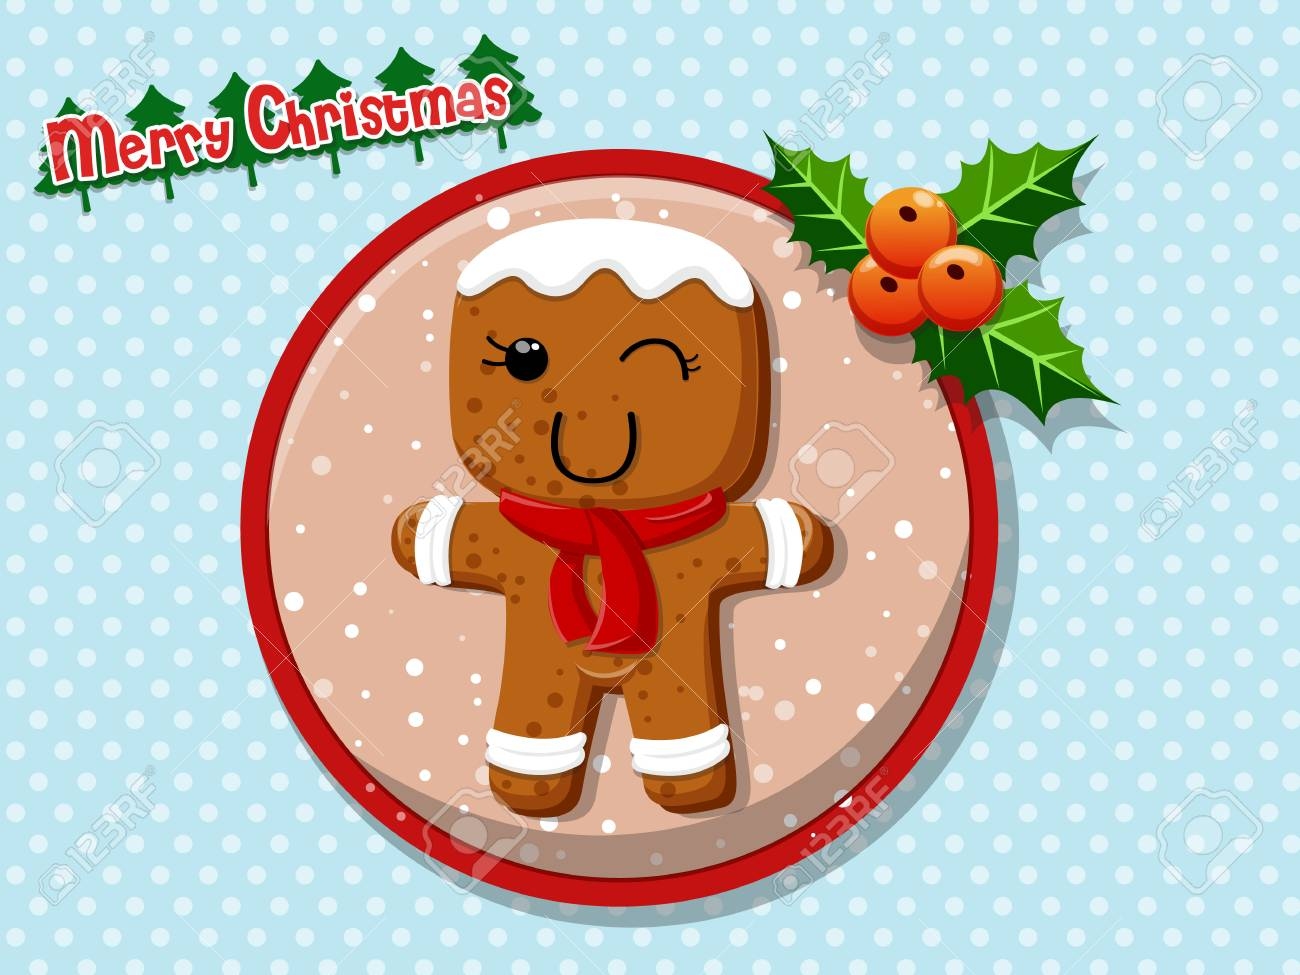 merry christmas cute cartoon gingerbread man cookies on a colorful background happy new year